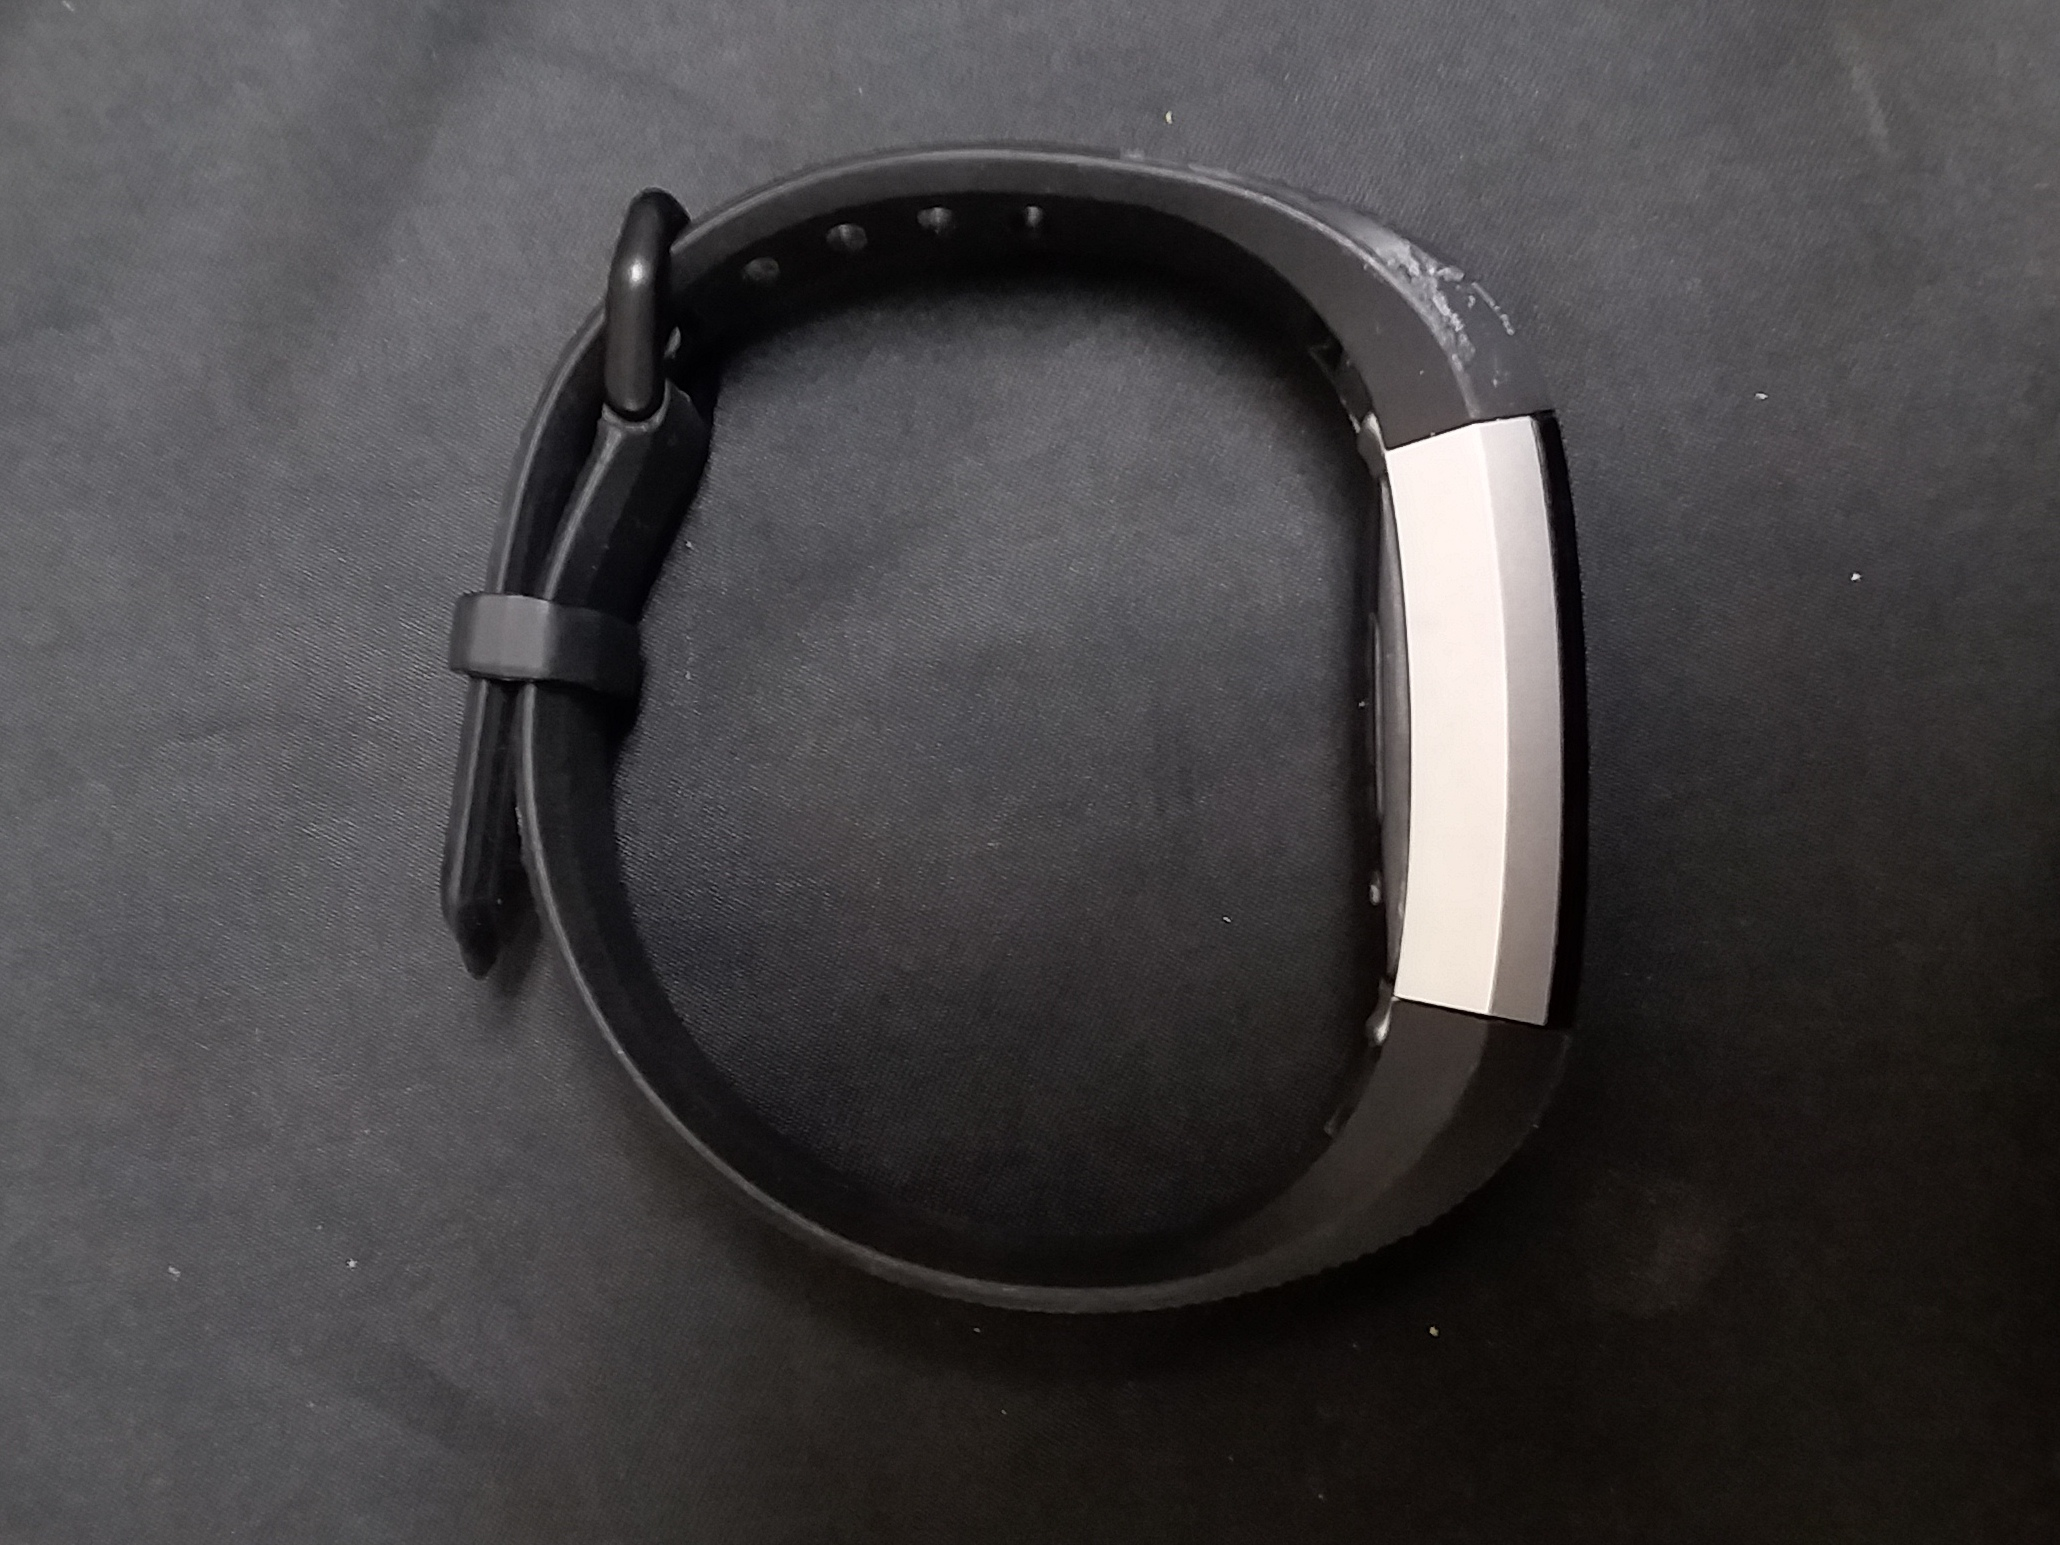 ALTA HR SMALL - FITBIT W/ CHARGER